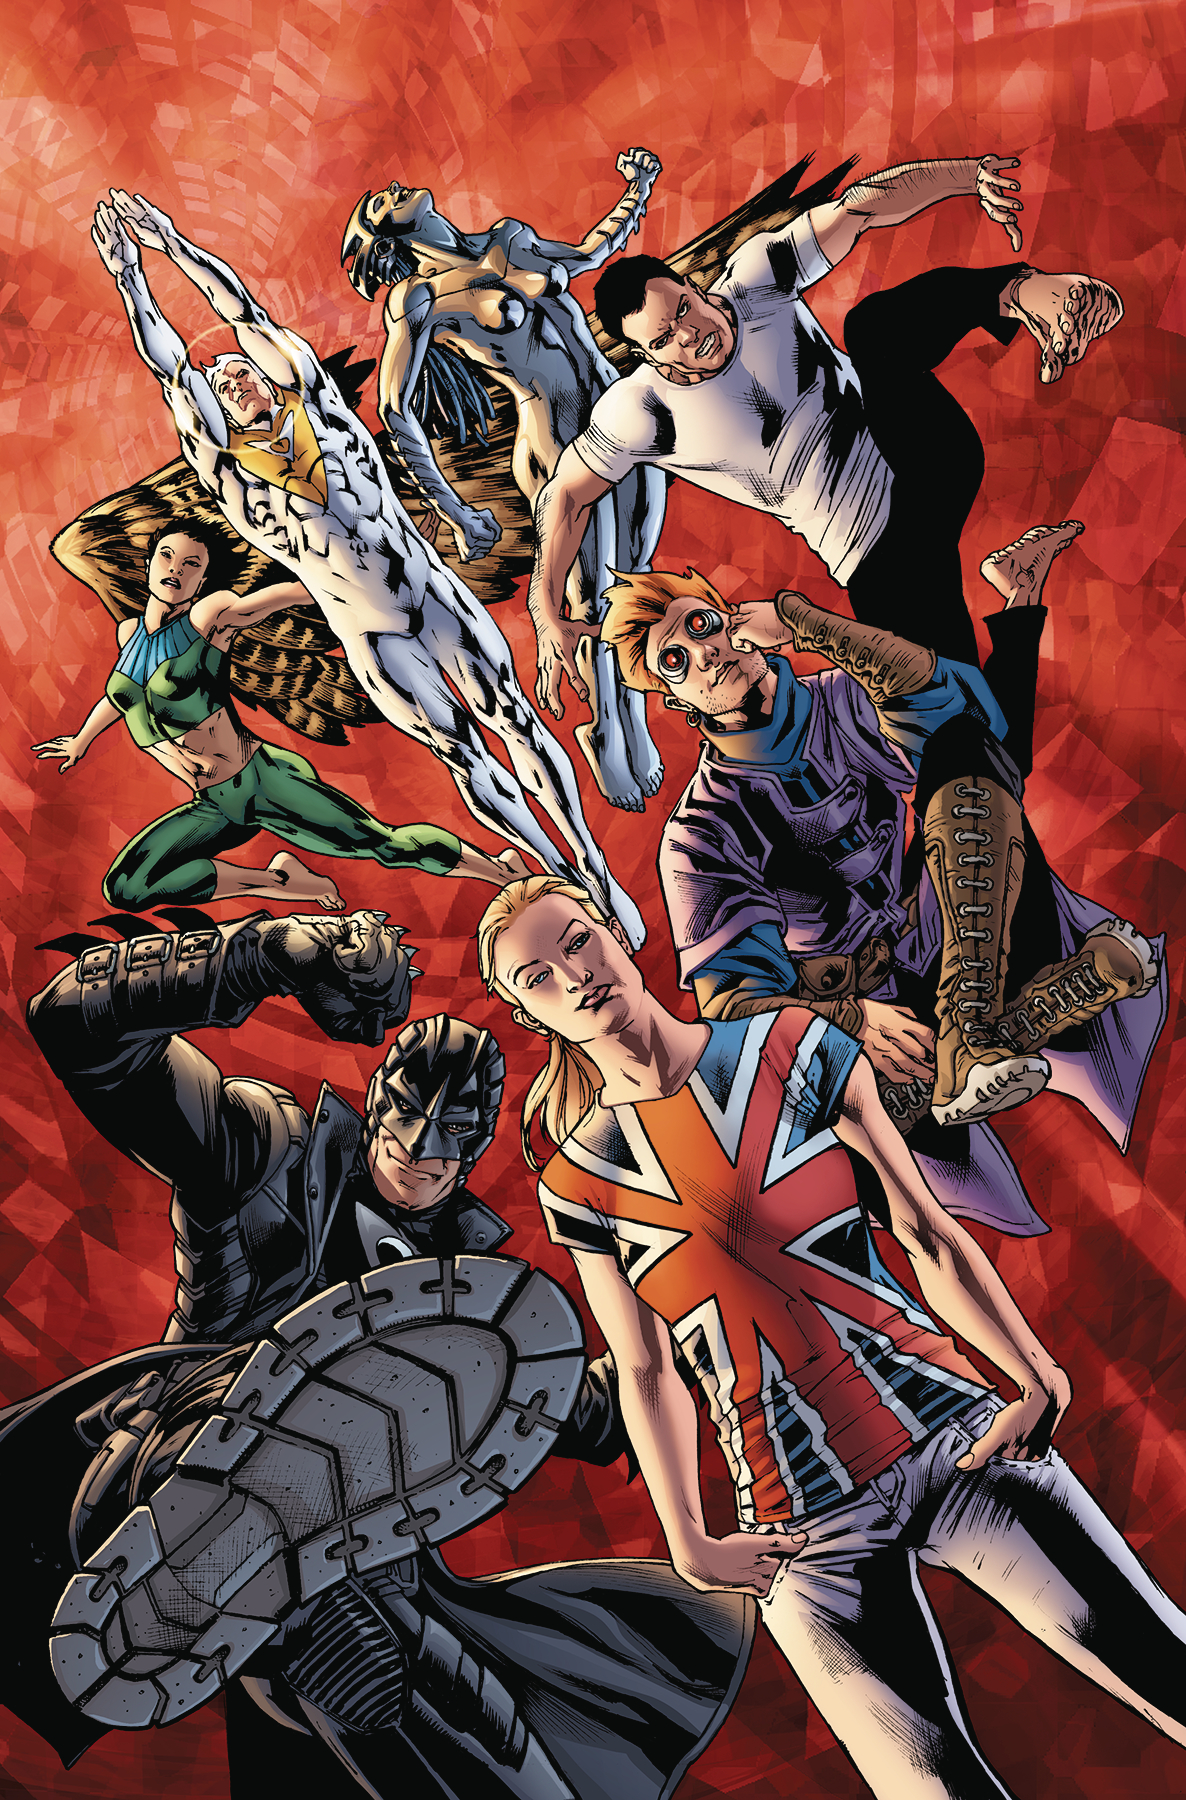 AUTHORITY TP VOL 01 (1999 #1-12) [Warren ELLIS & Bryan HITCH]